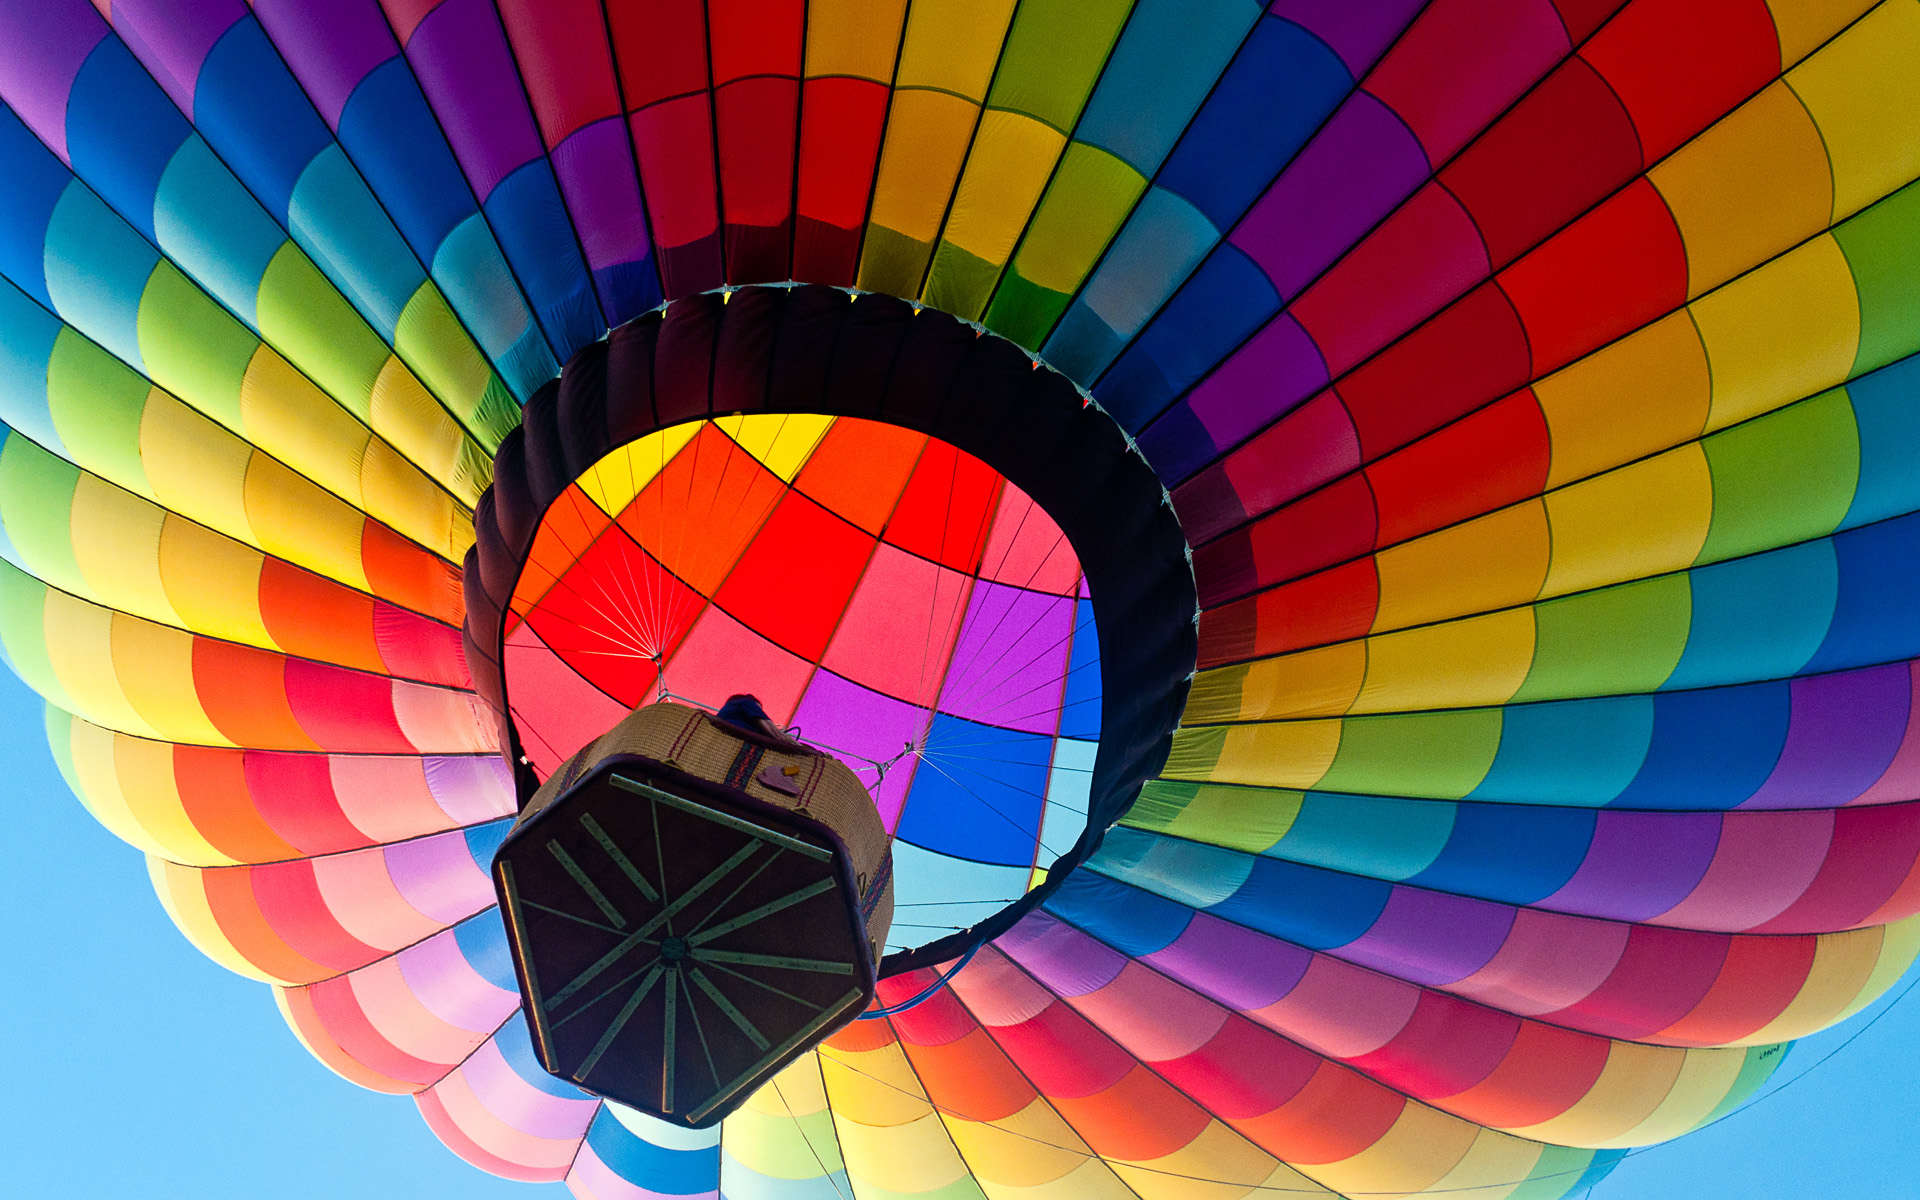 Colorful Hot Air Ballon Wallpaper